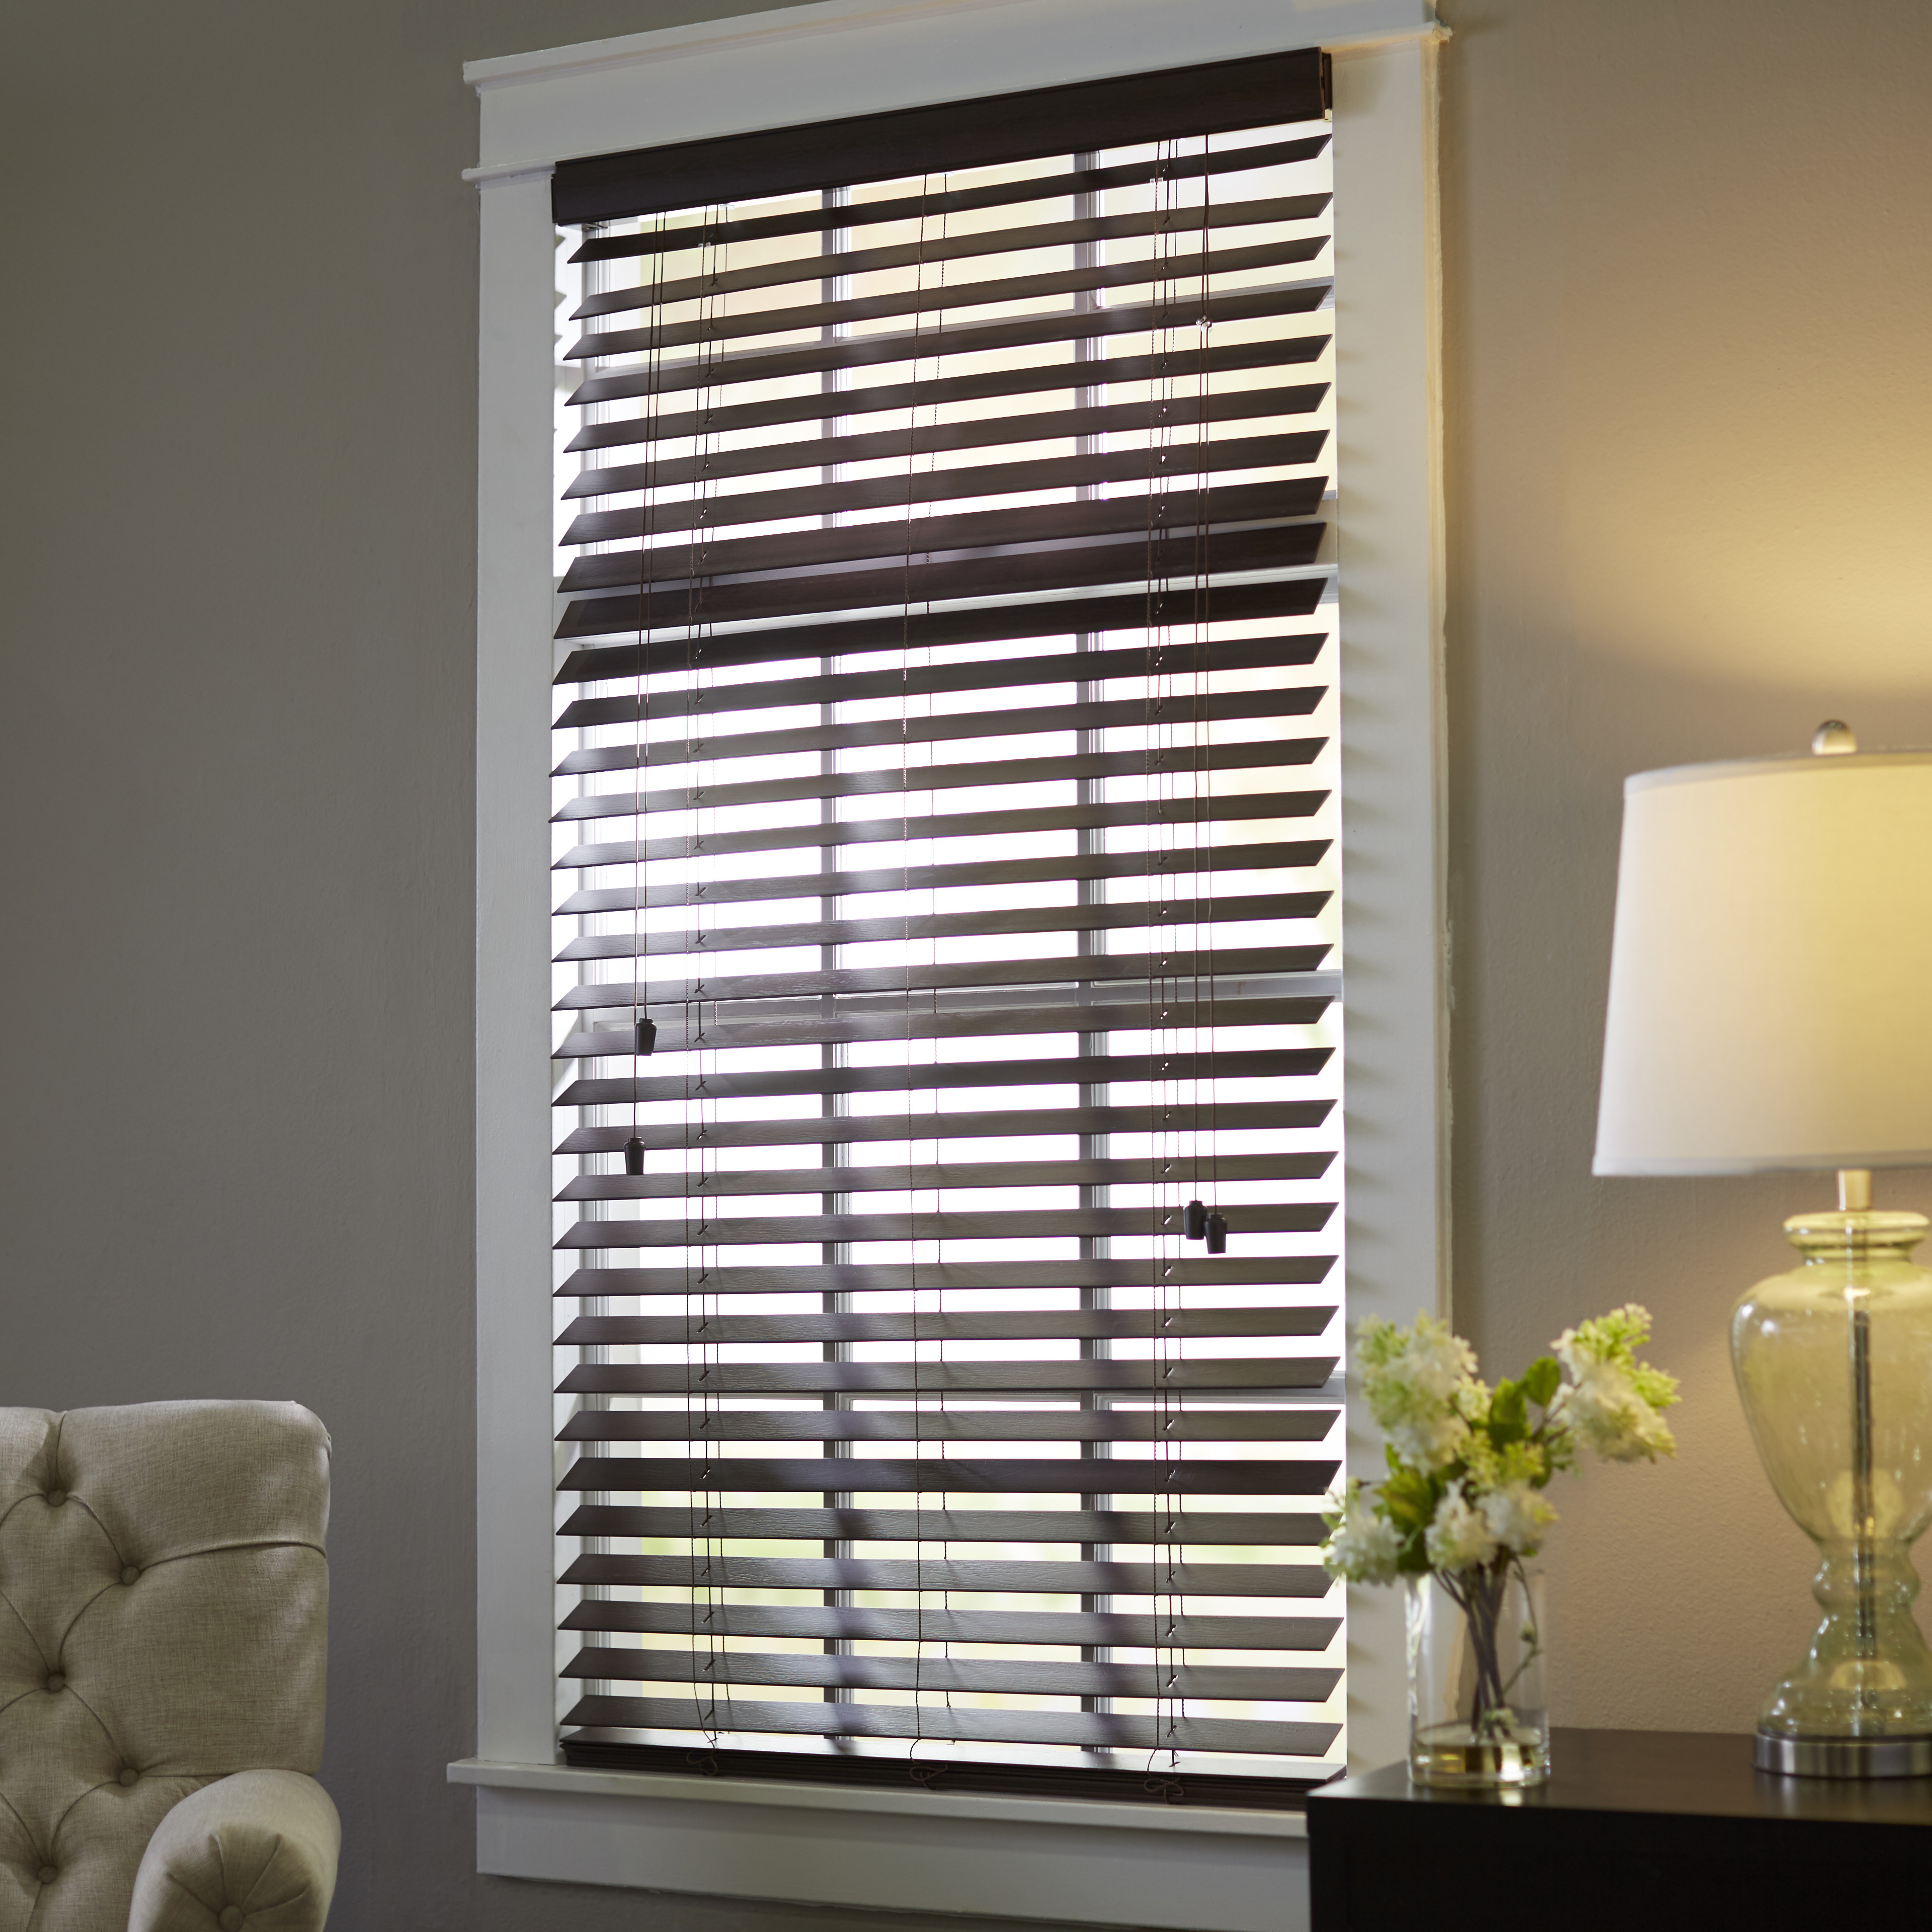 Menards Landscape Rock Menards Window Blinds Menars Store